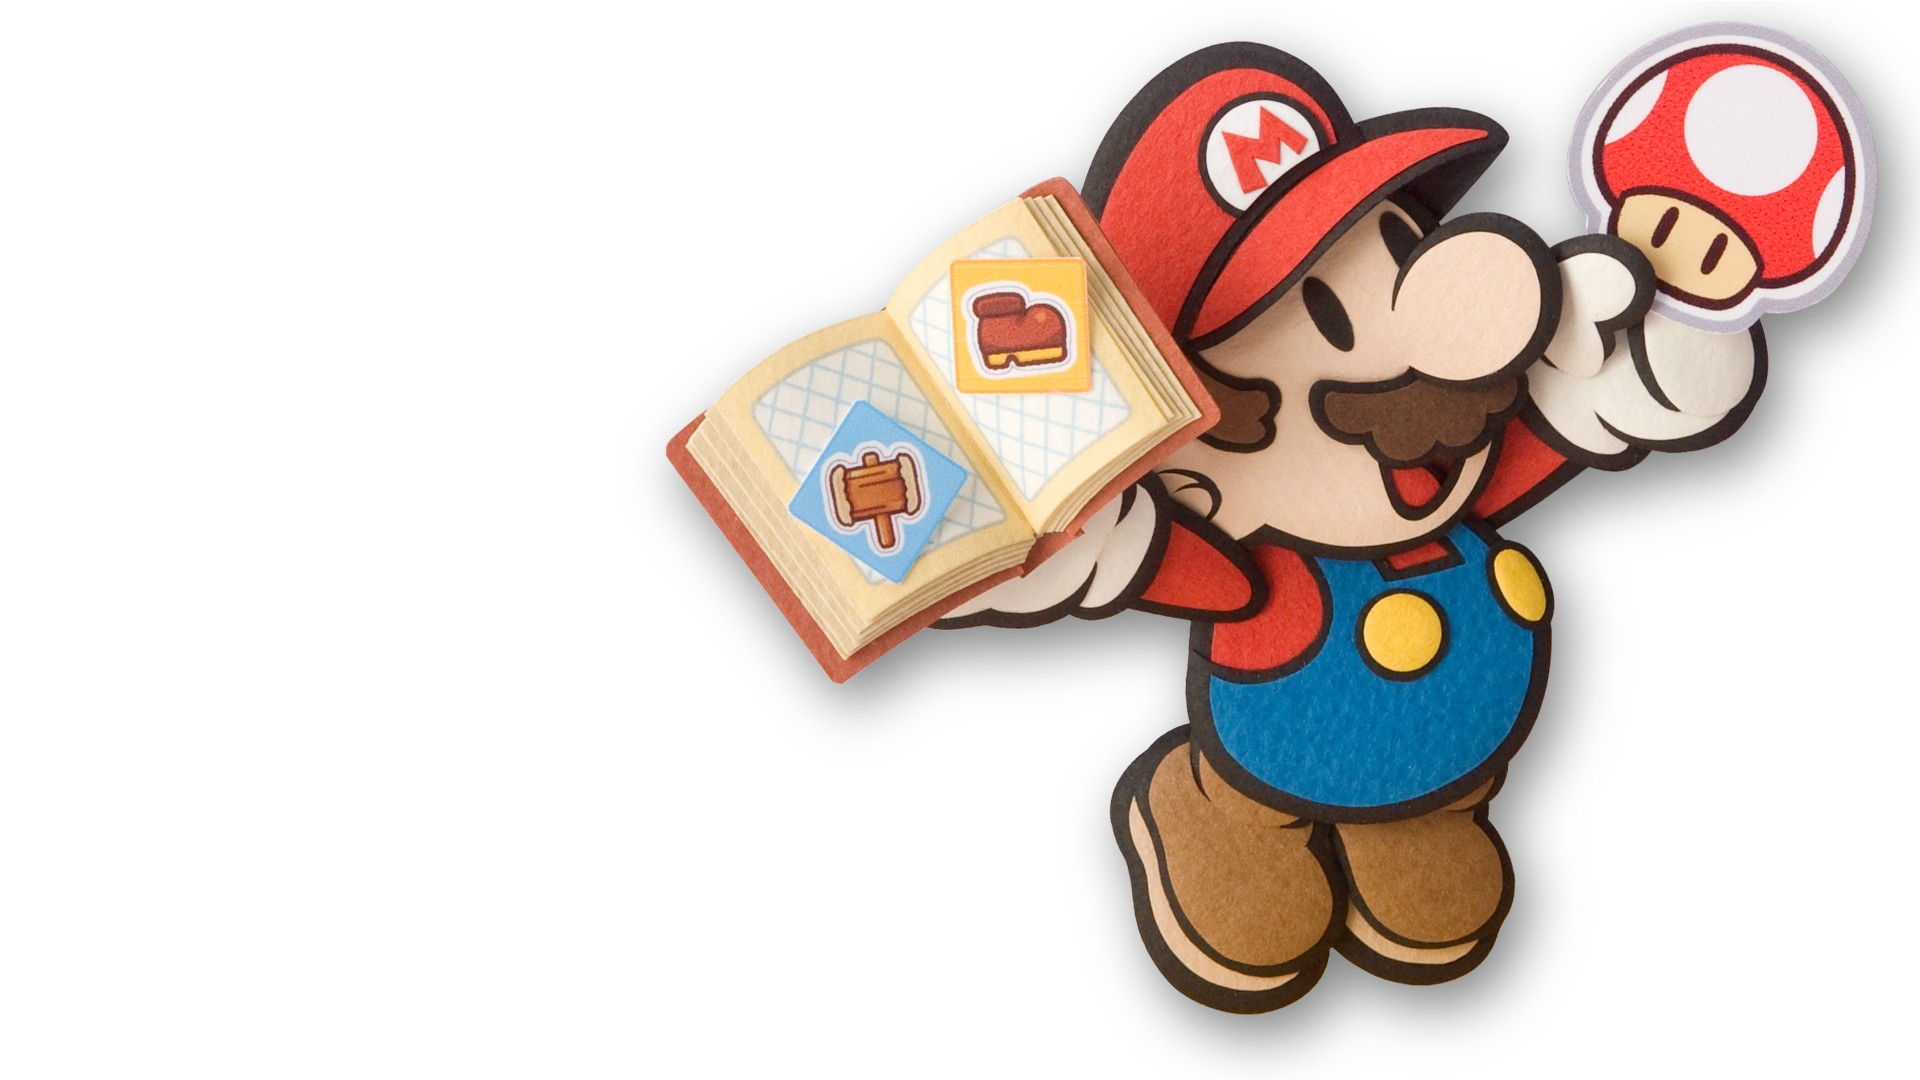 Paper Mario Sticker Star Wallpaper 4